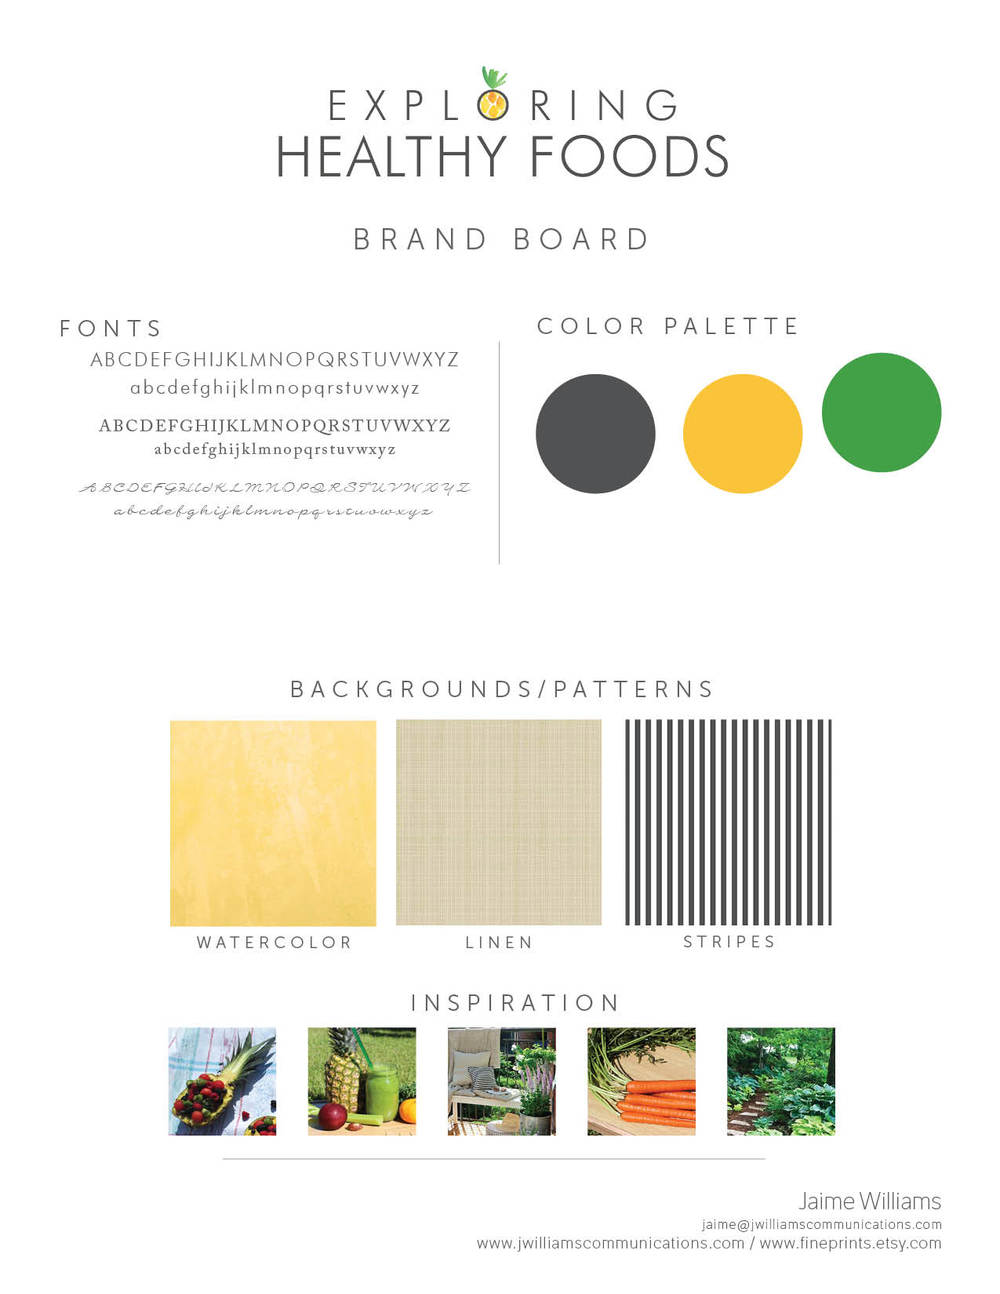 exploring healthy foods blog and book brand board and logo design - Blogs On Design